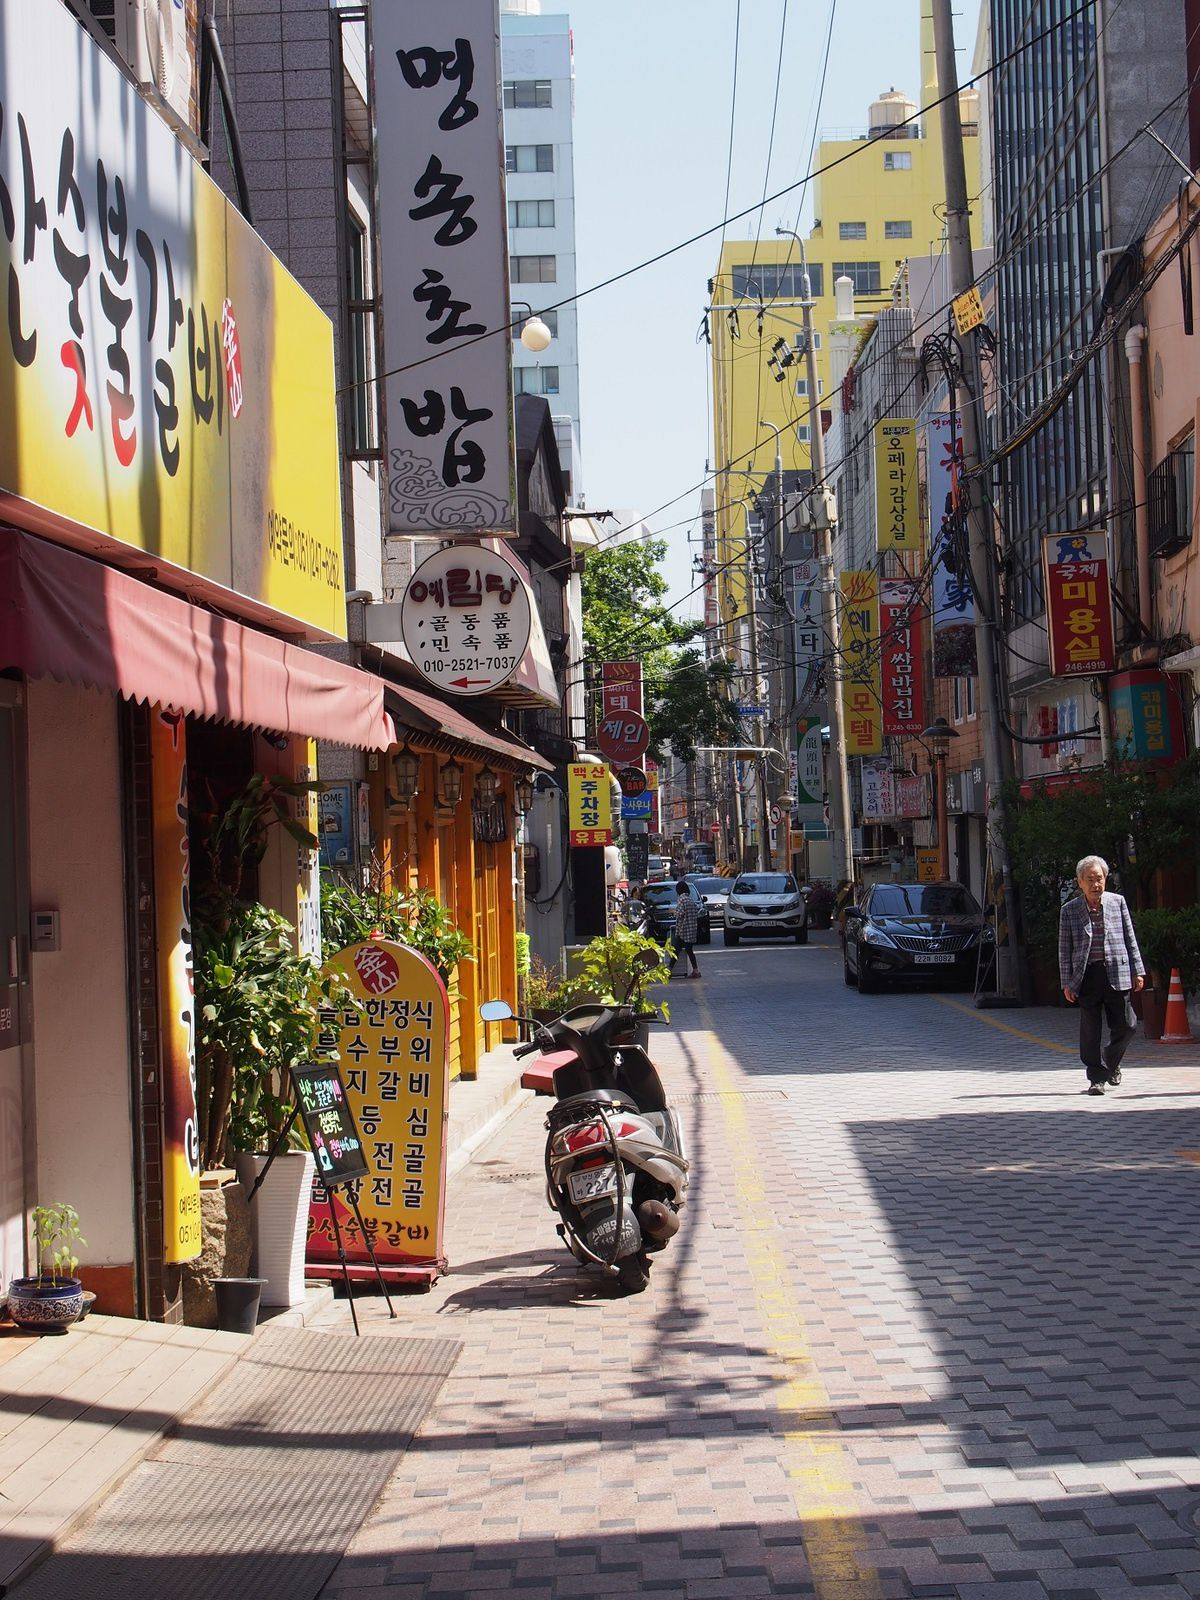 COREE : BUSAN, LE QUARTIER DU PORT